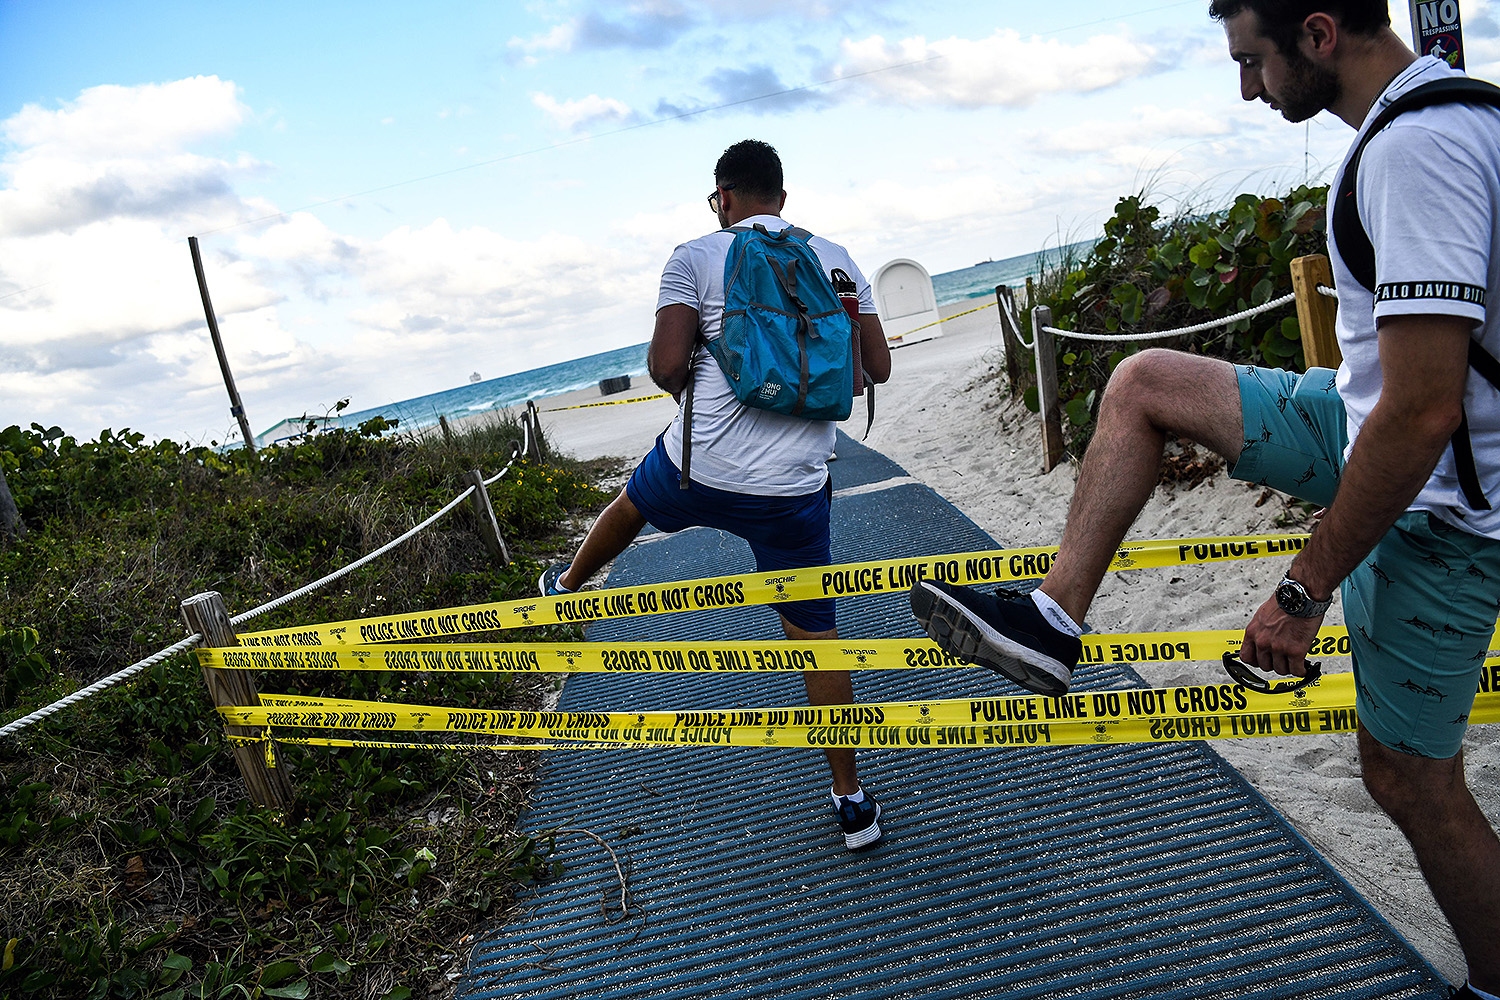 """Tourists trespass at the closed Miami Beach in Florida on March 19. After seeing large numbers of spring breakers crowd the shoreline, Miami Beach Mayor Dan Gelber closed all beaches in an attempt to stop the spread of the coronavirus. """"You've got to think about the person next to you and even the person you don't know,"""" Gelber said. CHANDAN KHANNA/AFP via Getty Images"""